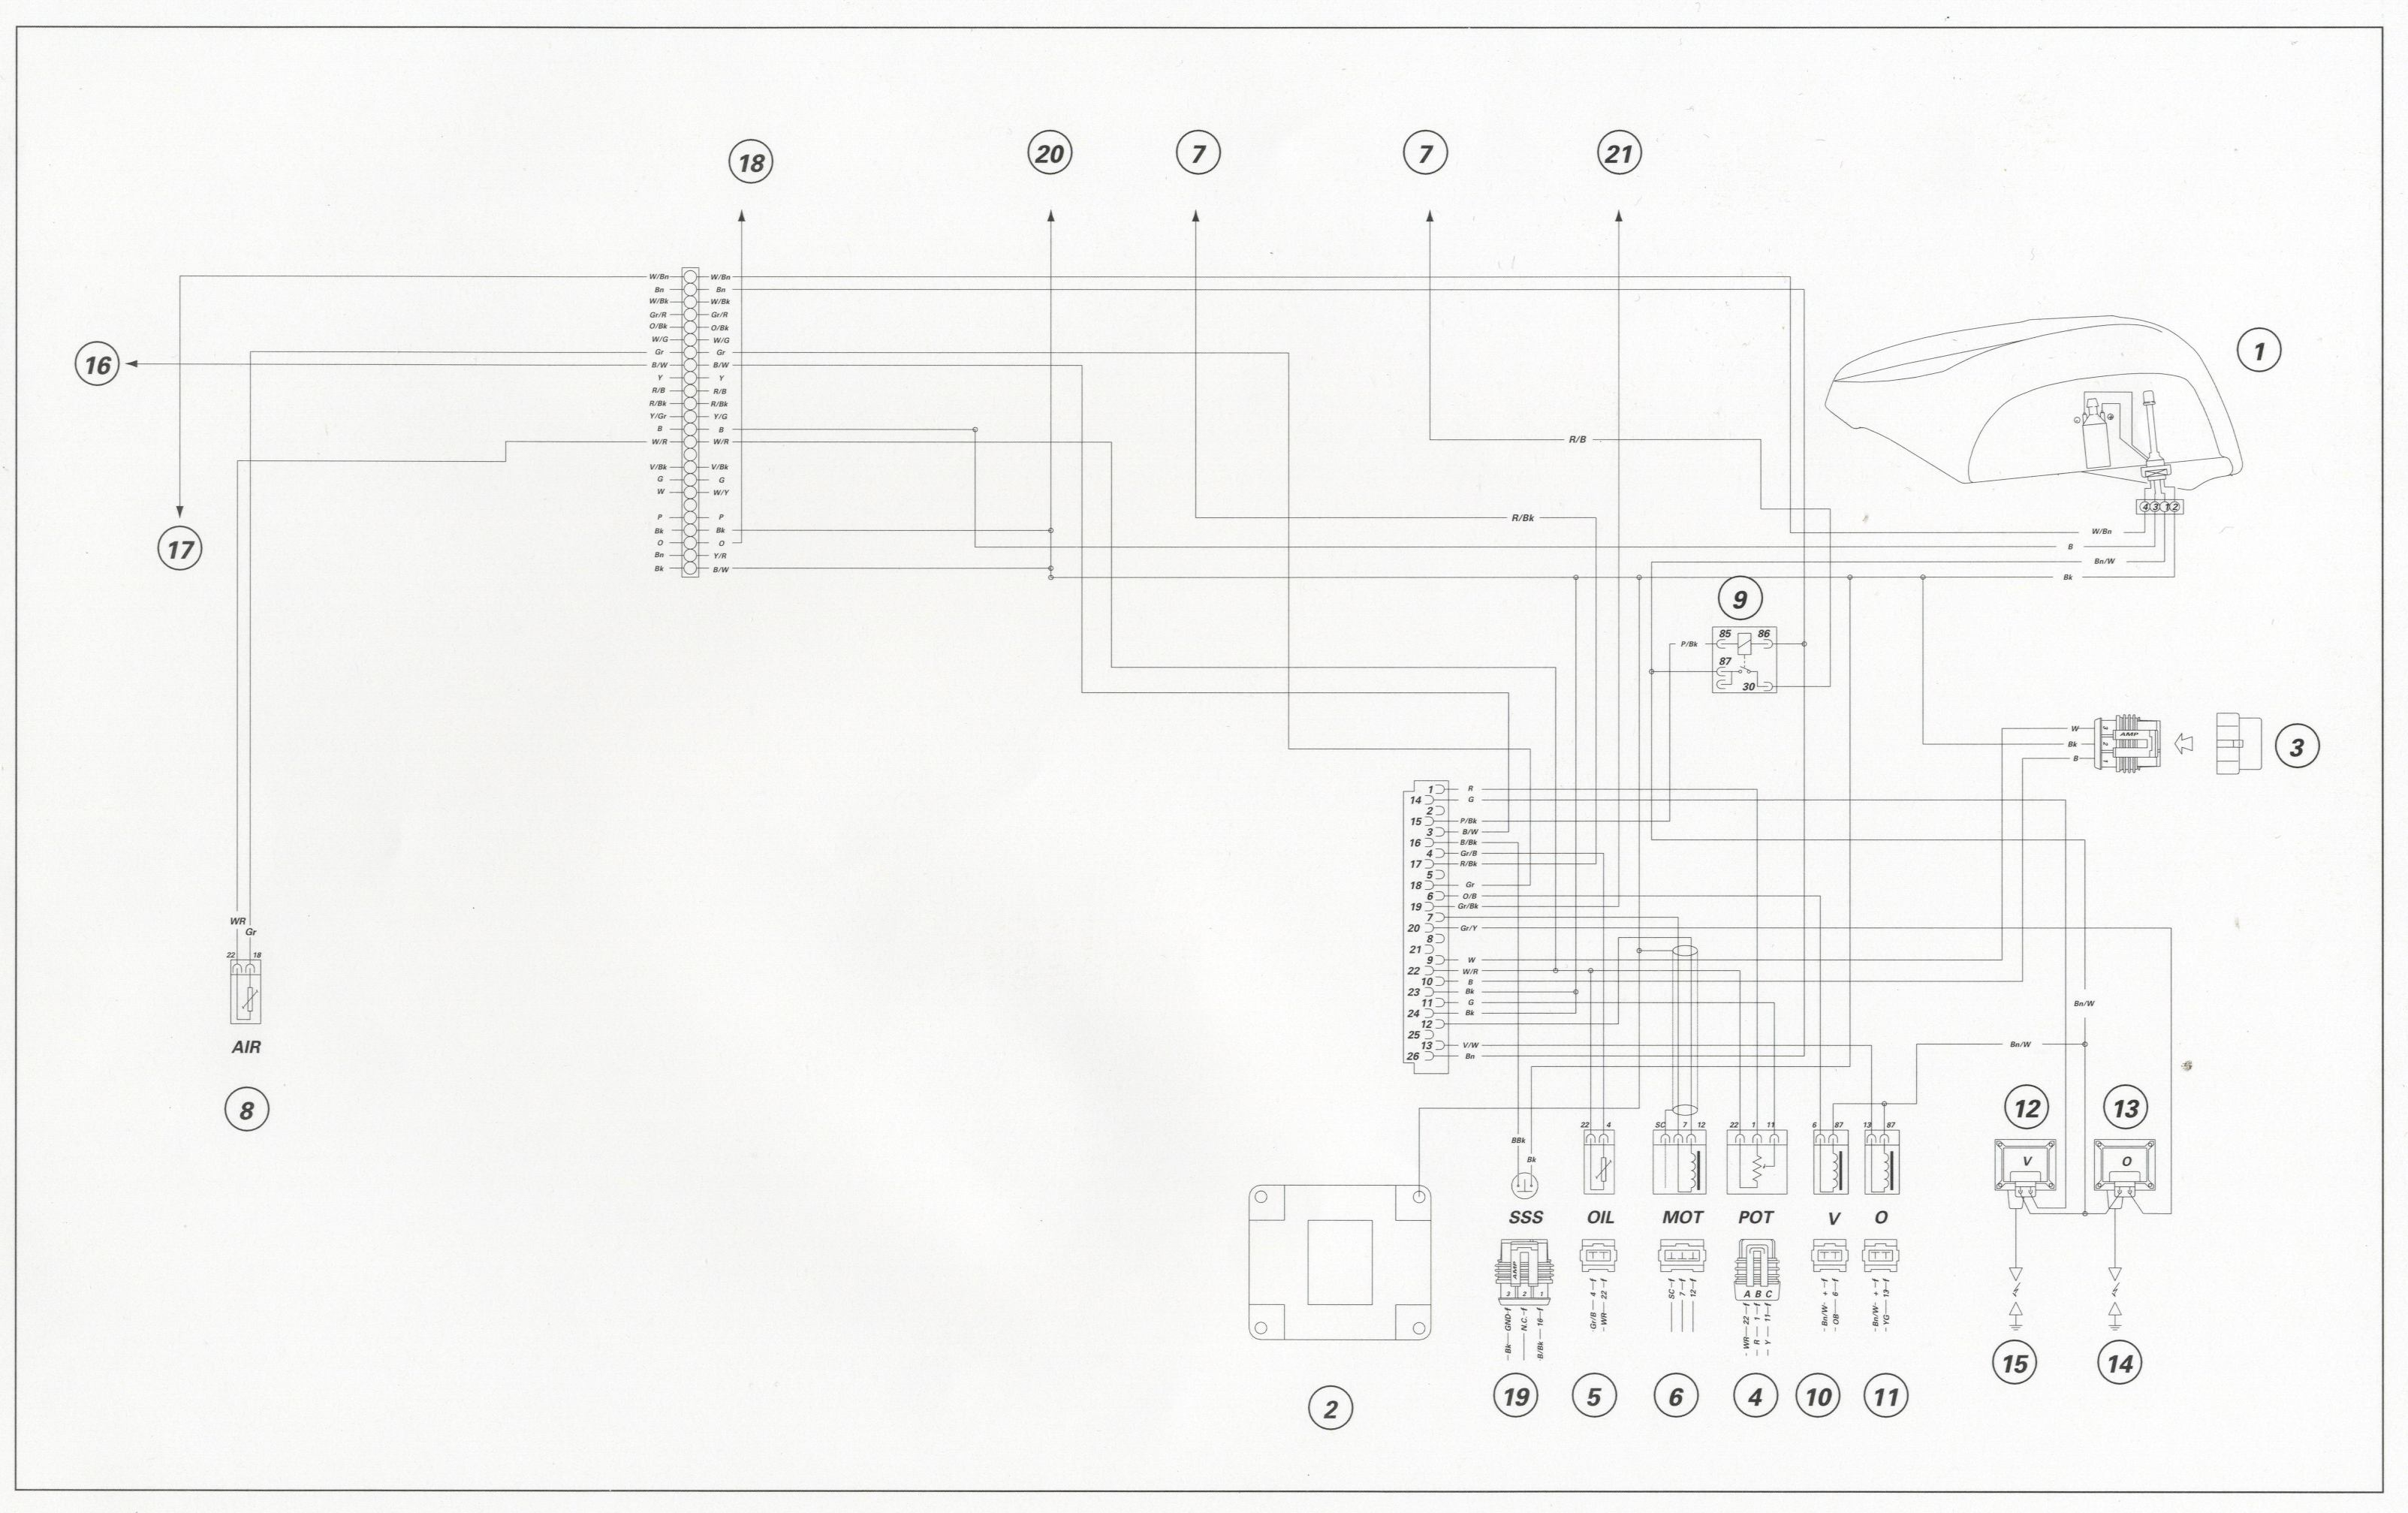 Ecu Pinout Diagram Ducati Ms The Ultimate Ducati Forum